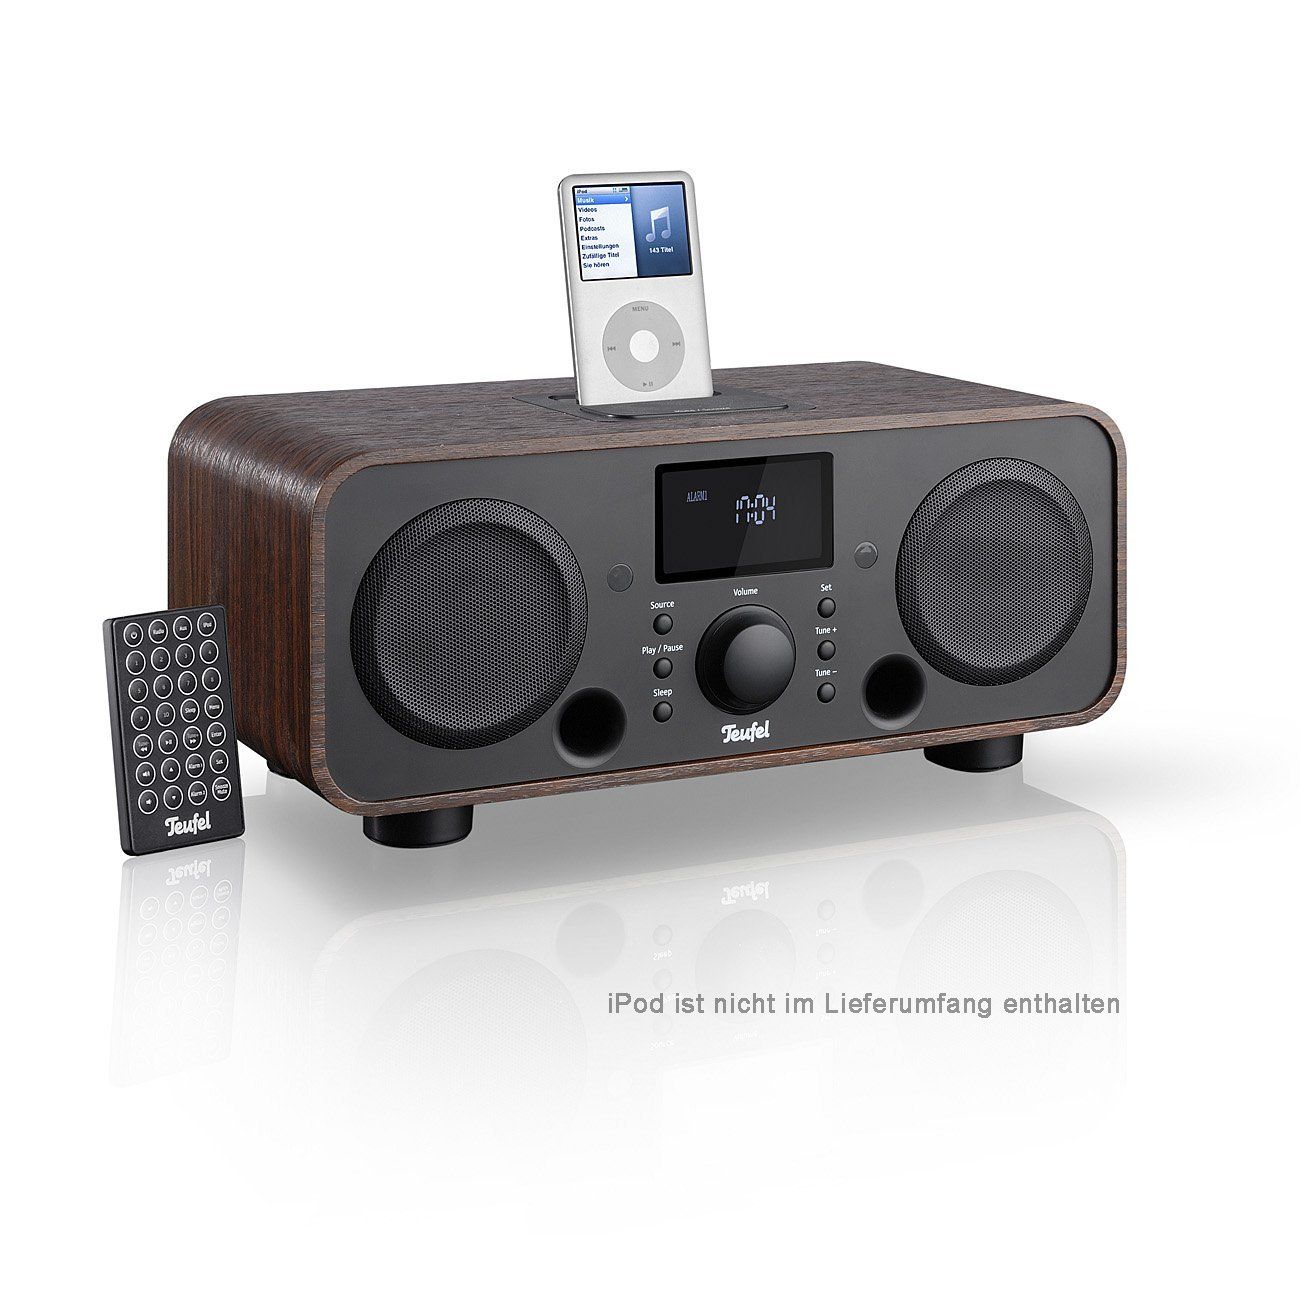 ITeufel Radio v2 Nogal Mesa Radio con subwoofer Integrado y Dock ...